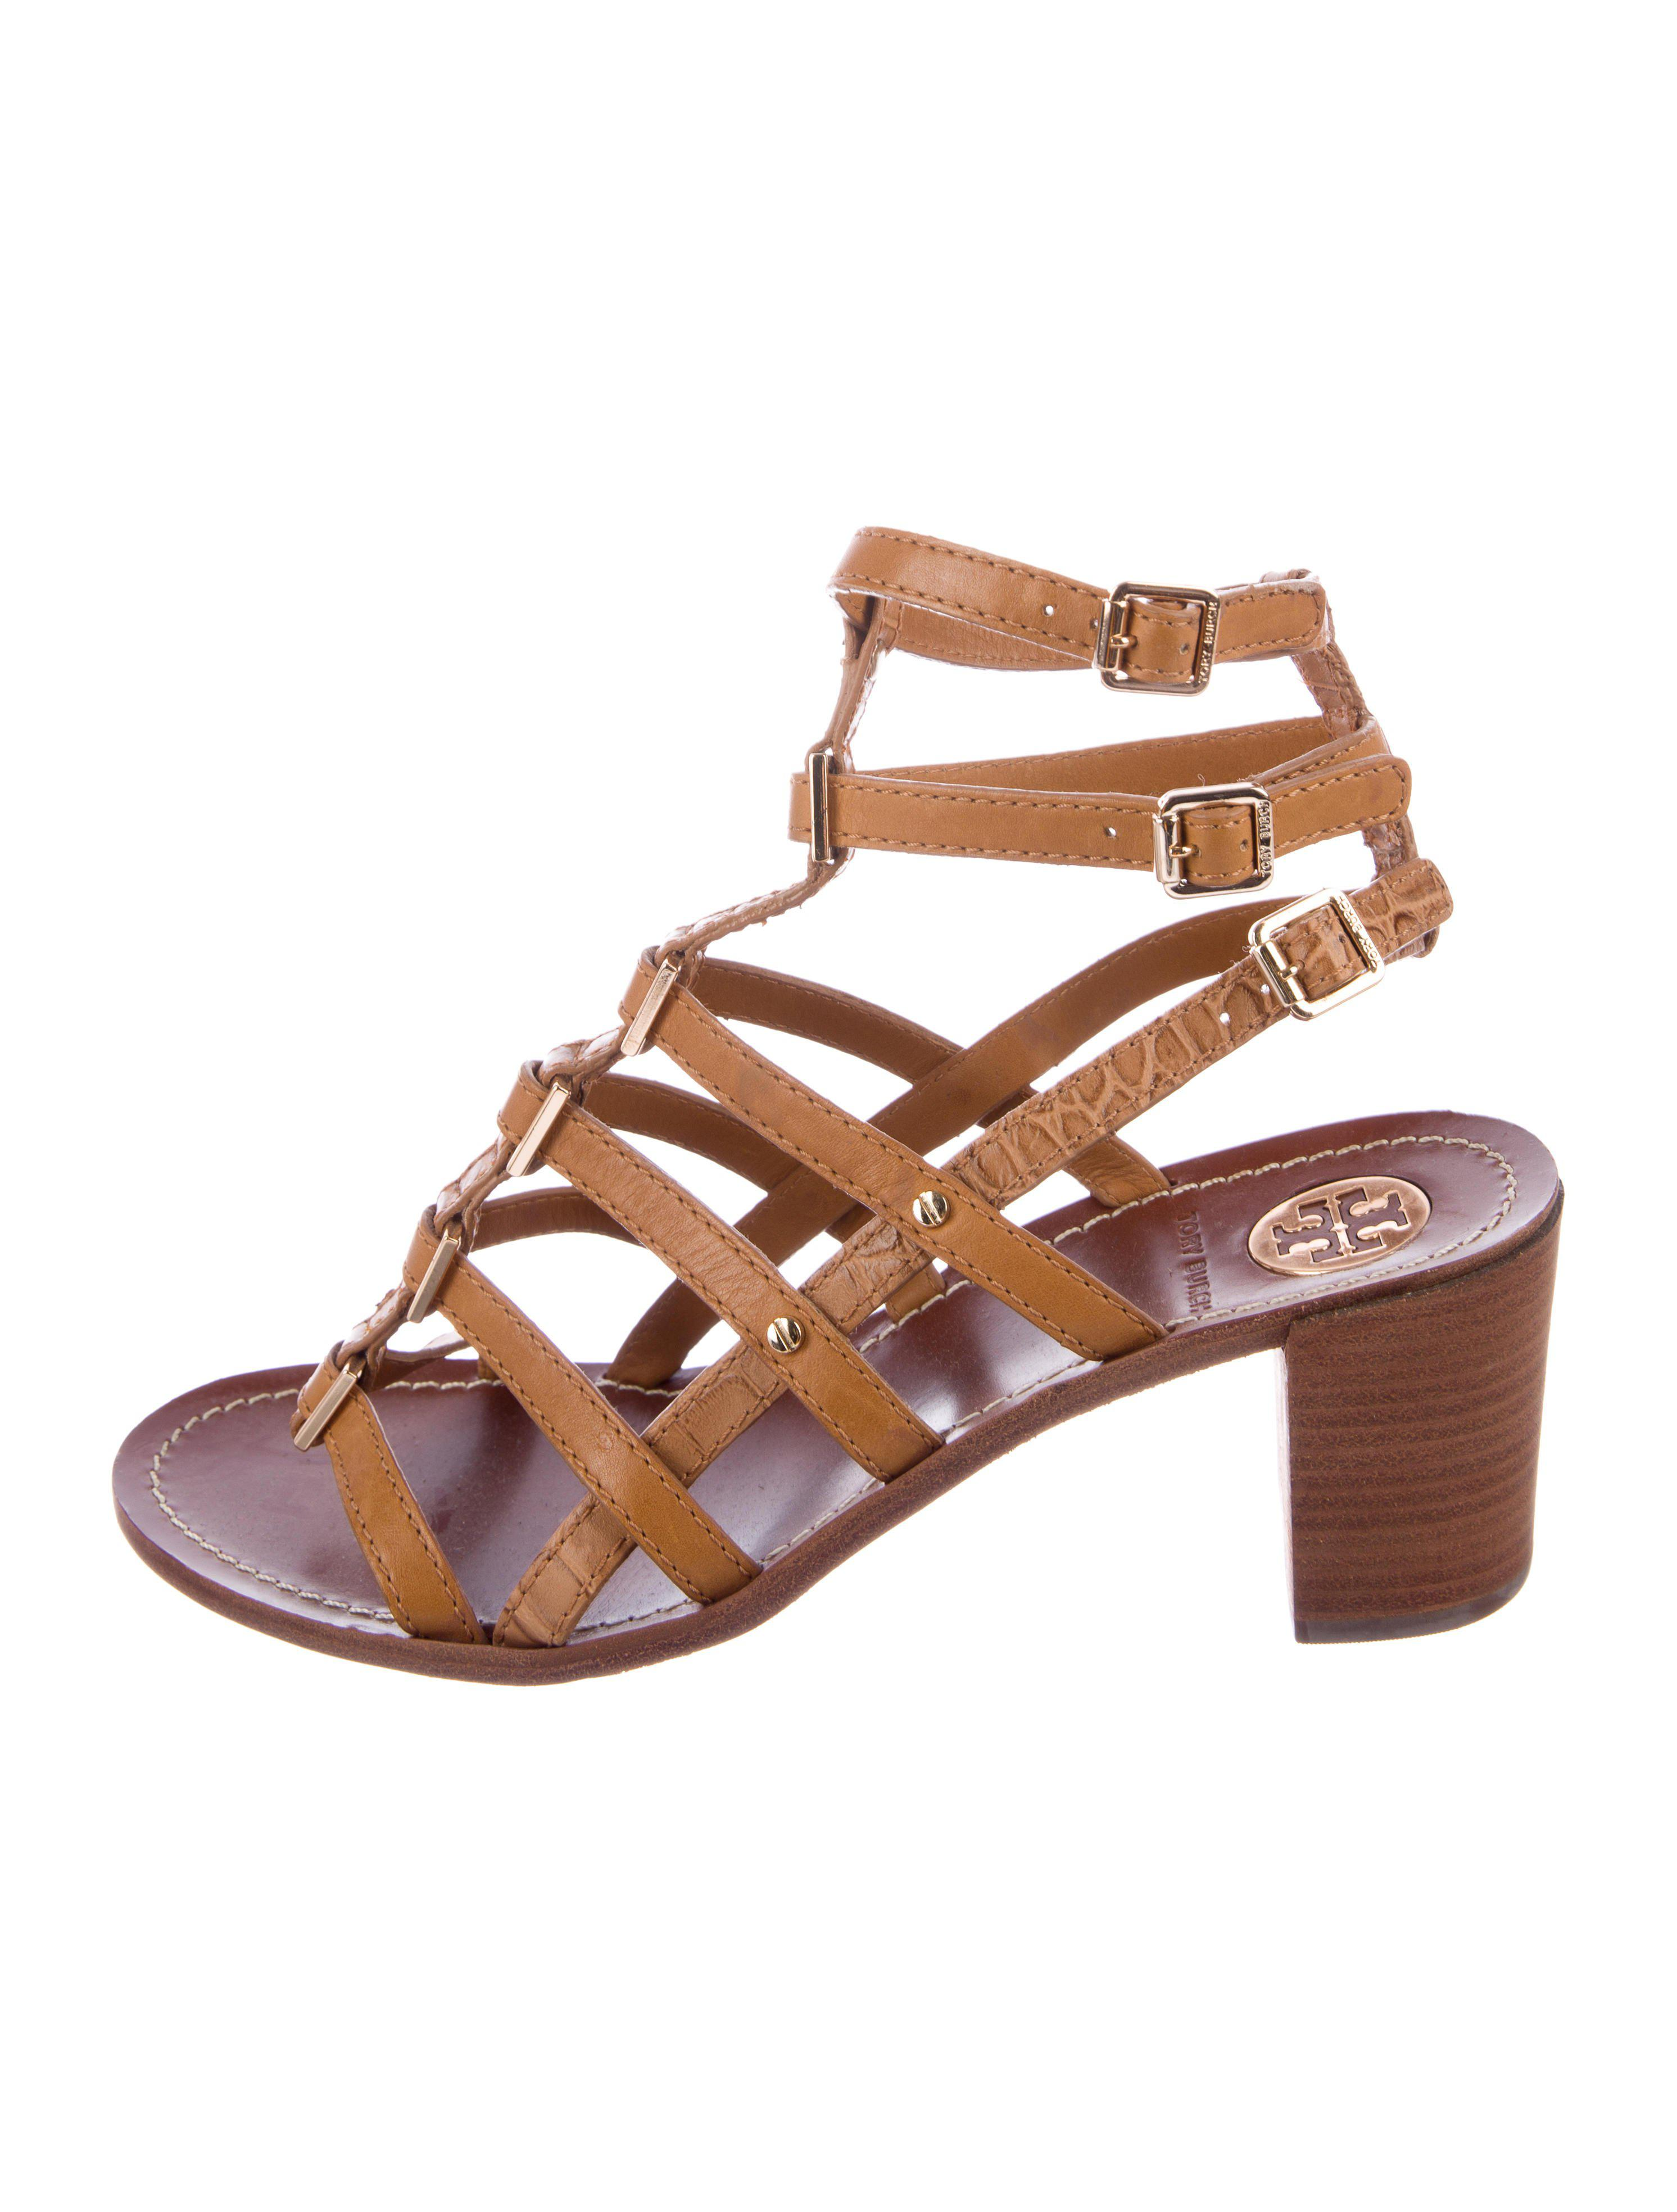 professional for sale Tory Burch Leather Caged Sandals clearance enjoy clearance brand new unisex mwXxde